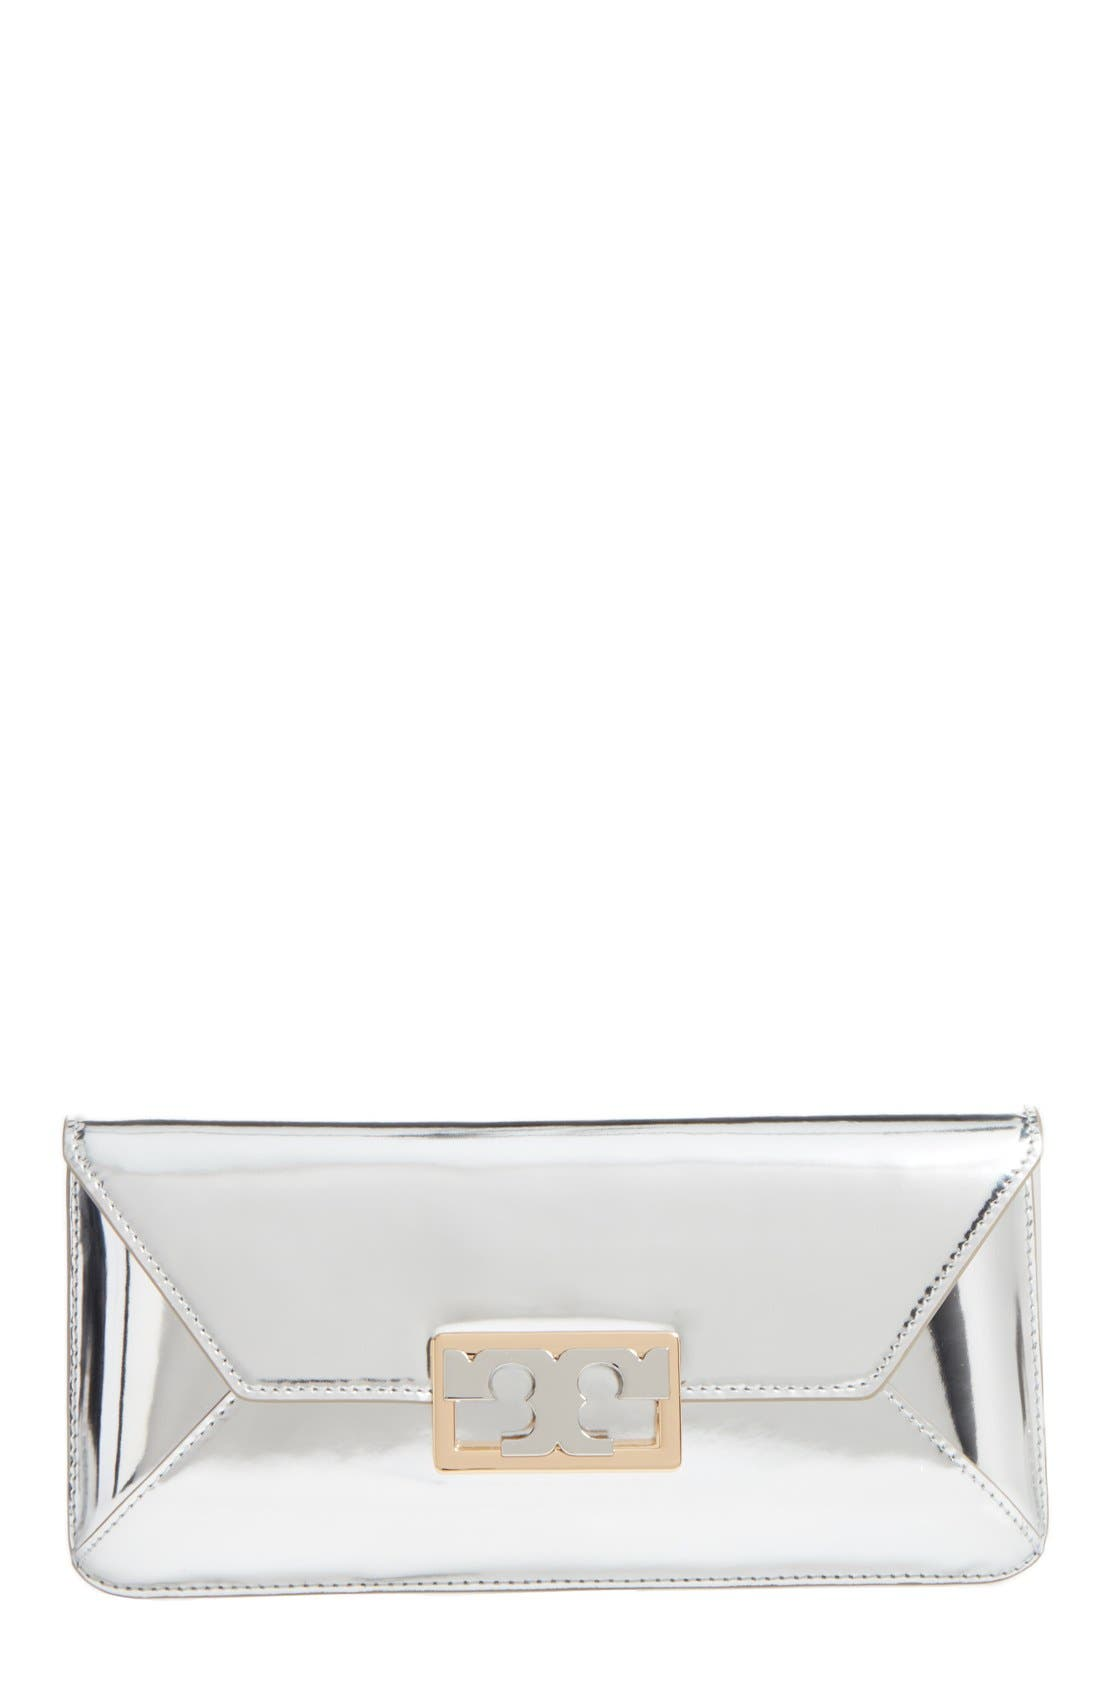 Tory Burch Gigi Metallic Leather Clutch